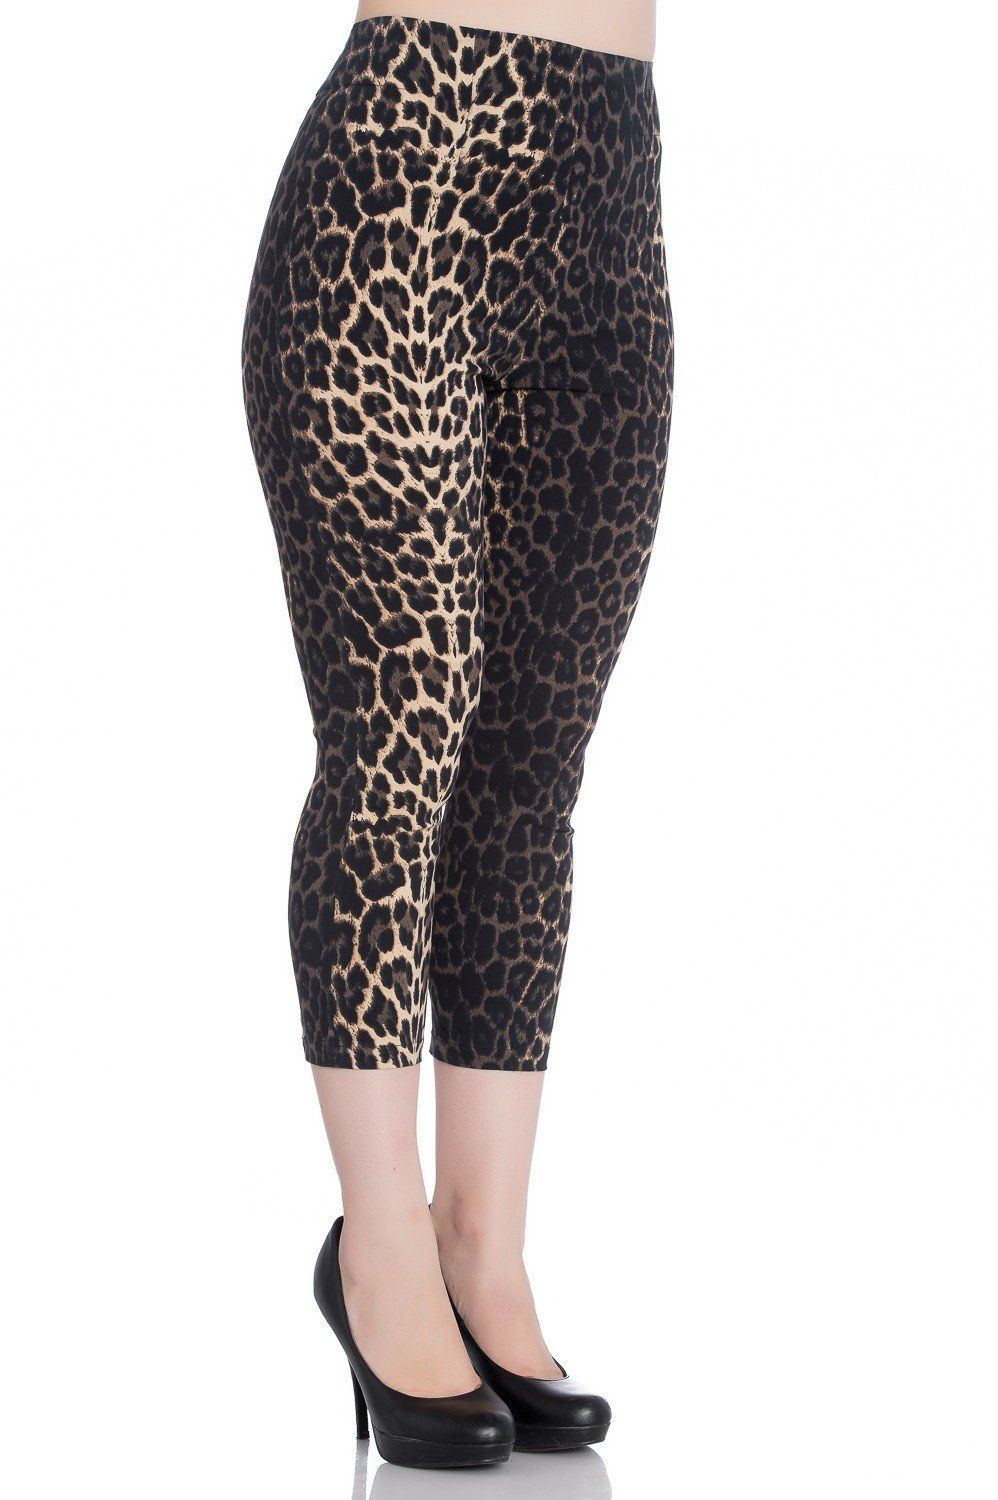 c1a58dd0f2f326 High Waist Retro Panthera Capris in Leopard Print | Capri Trousers